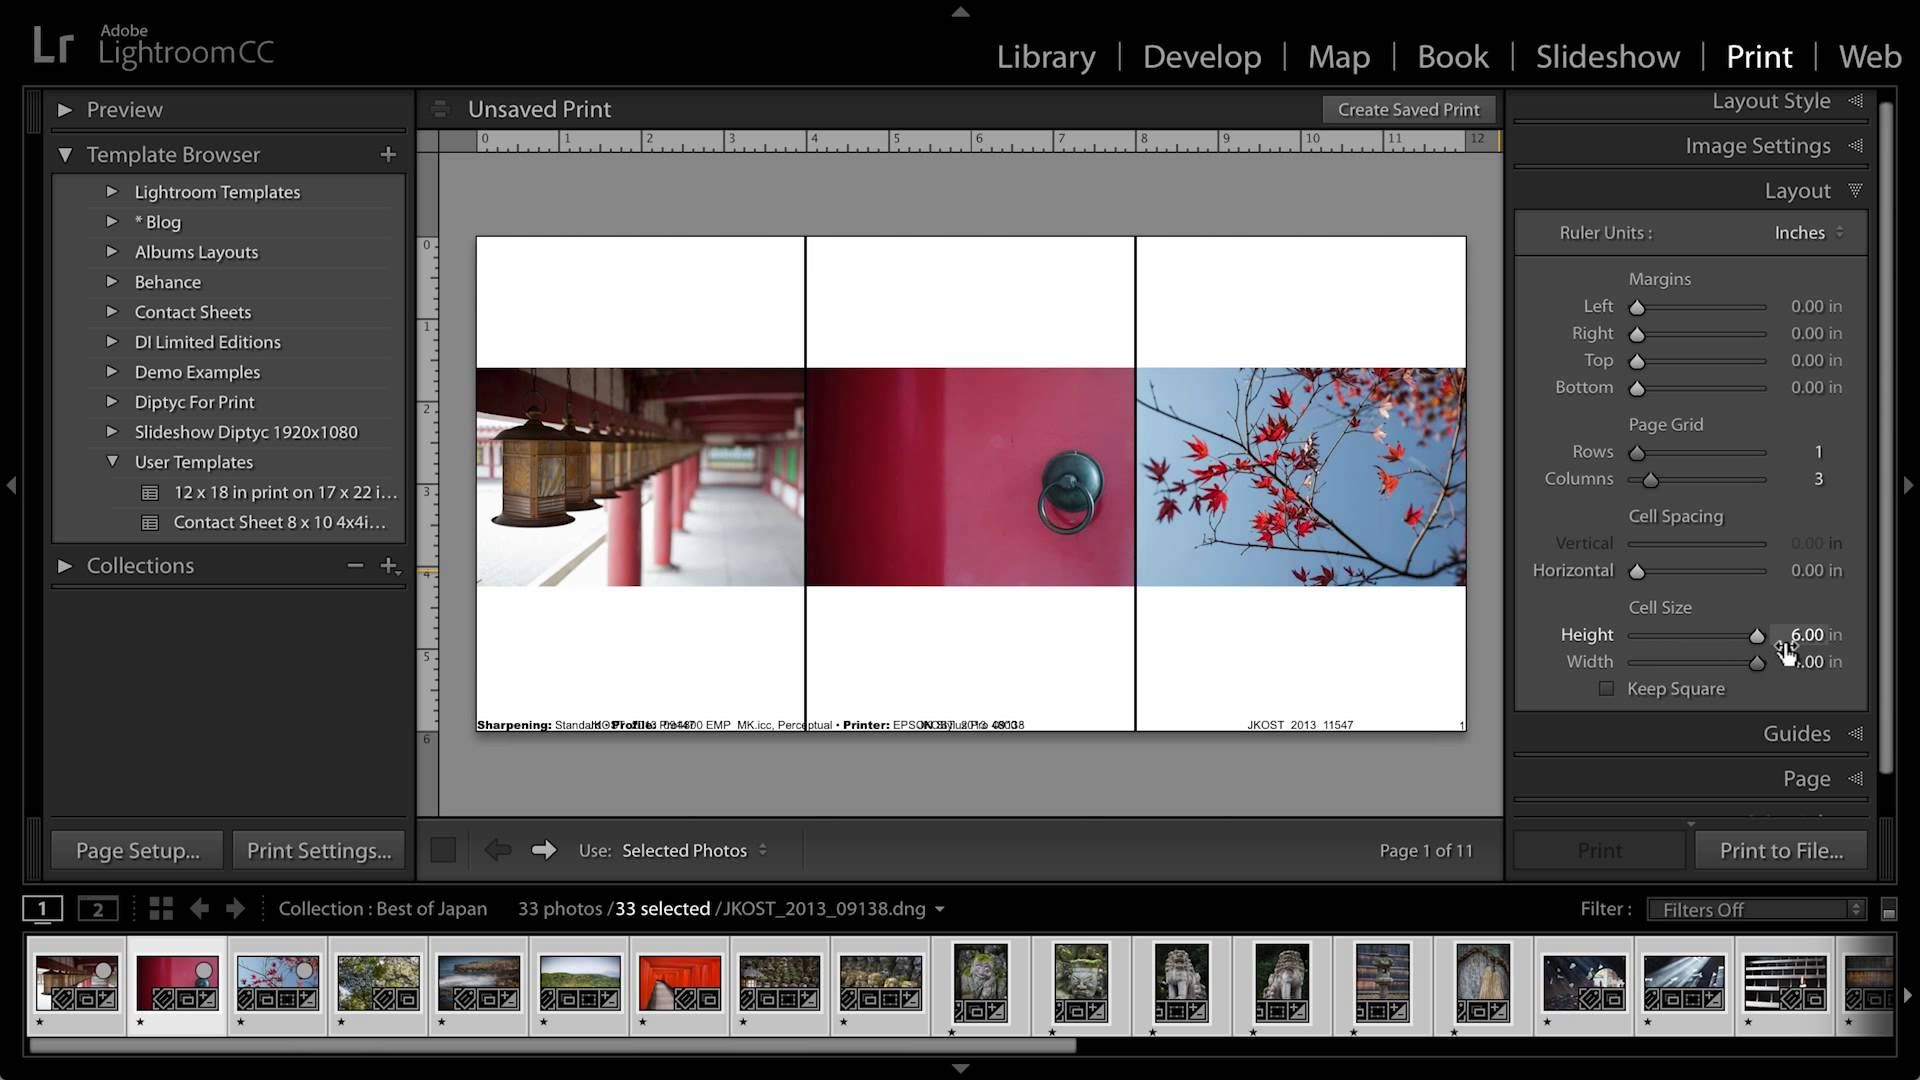 Printing Multiple Images to a Single JPEG in Lightroom